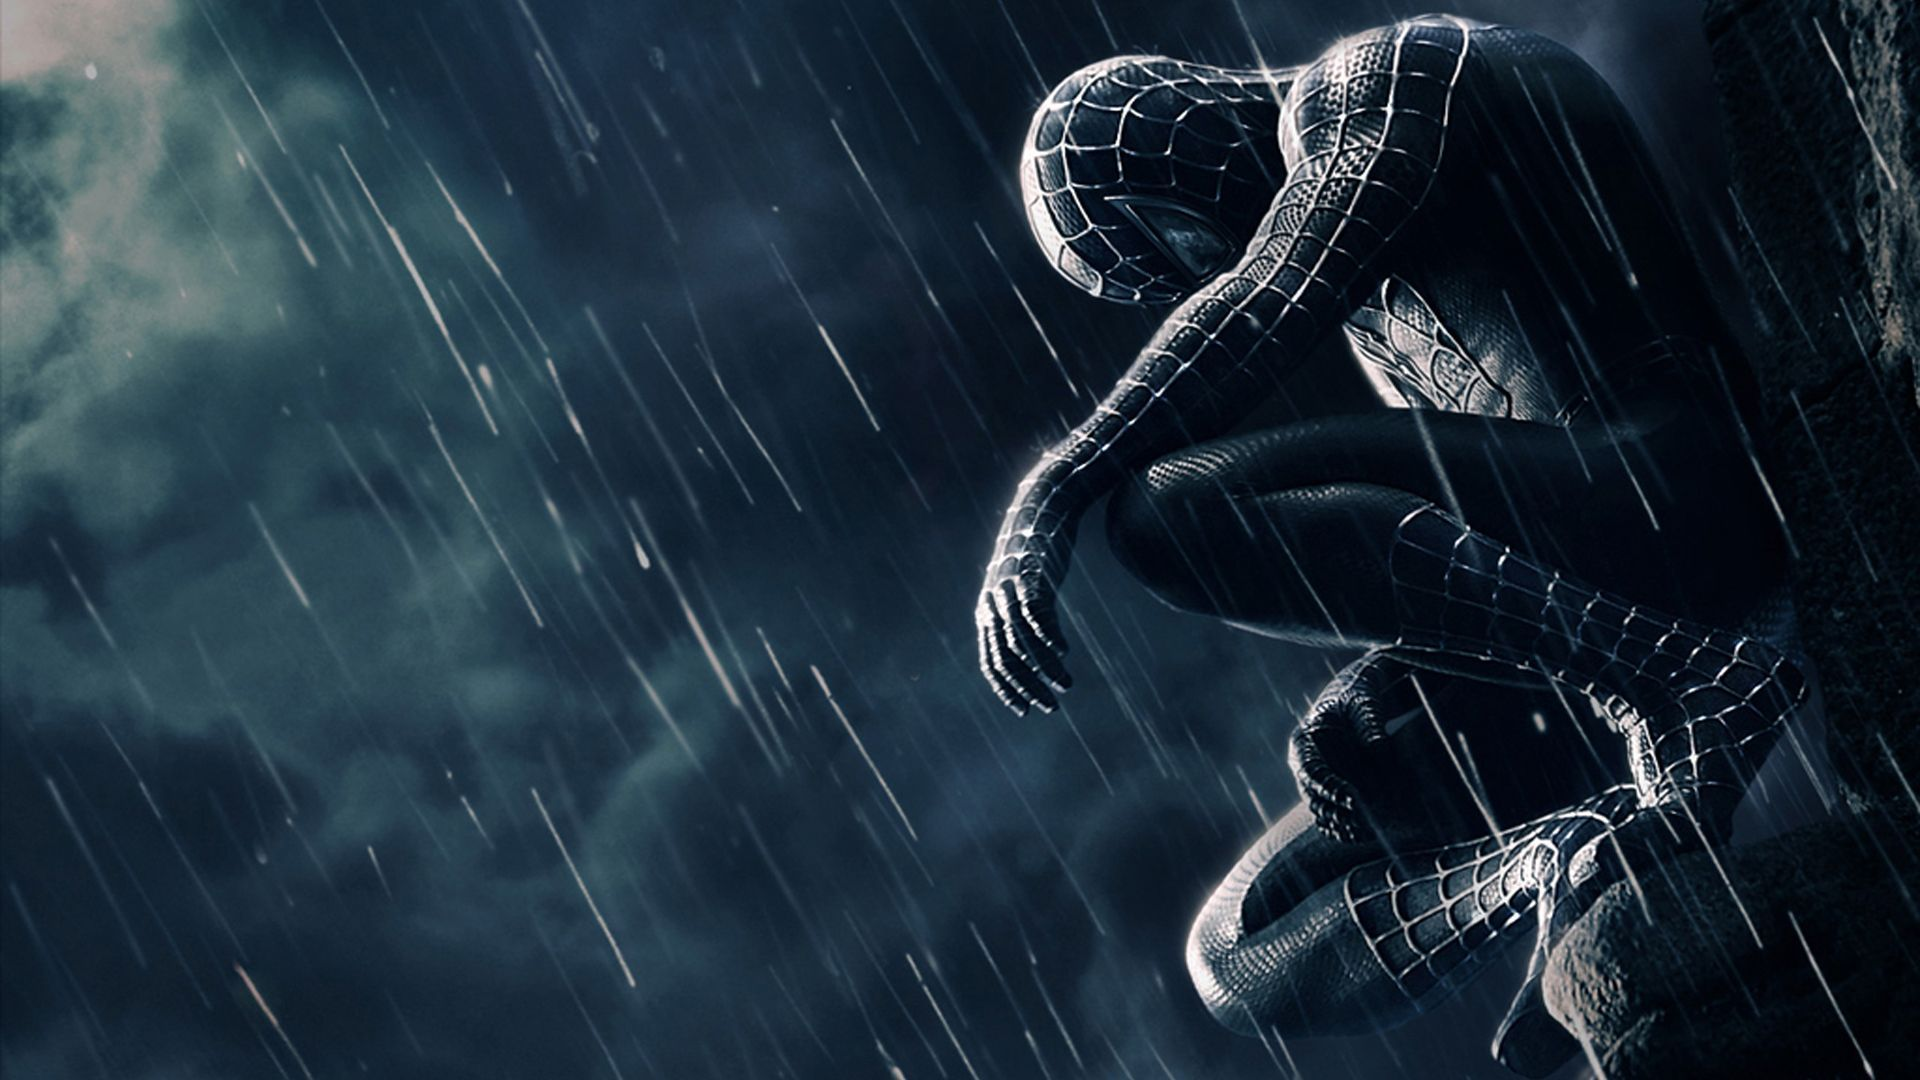 Spider Man HD Wallpapers - Wallpaper Cave